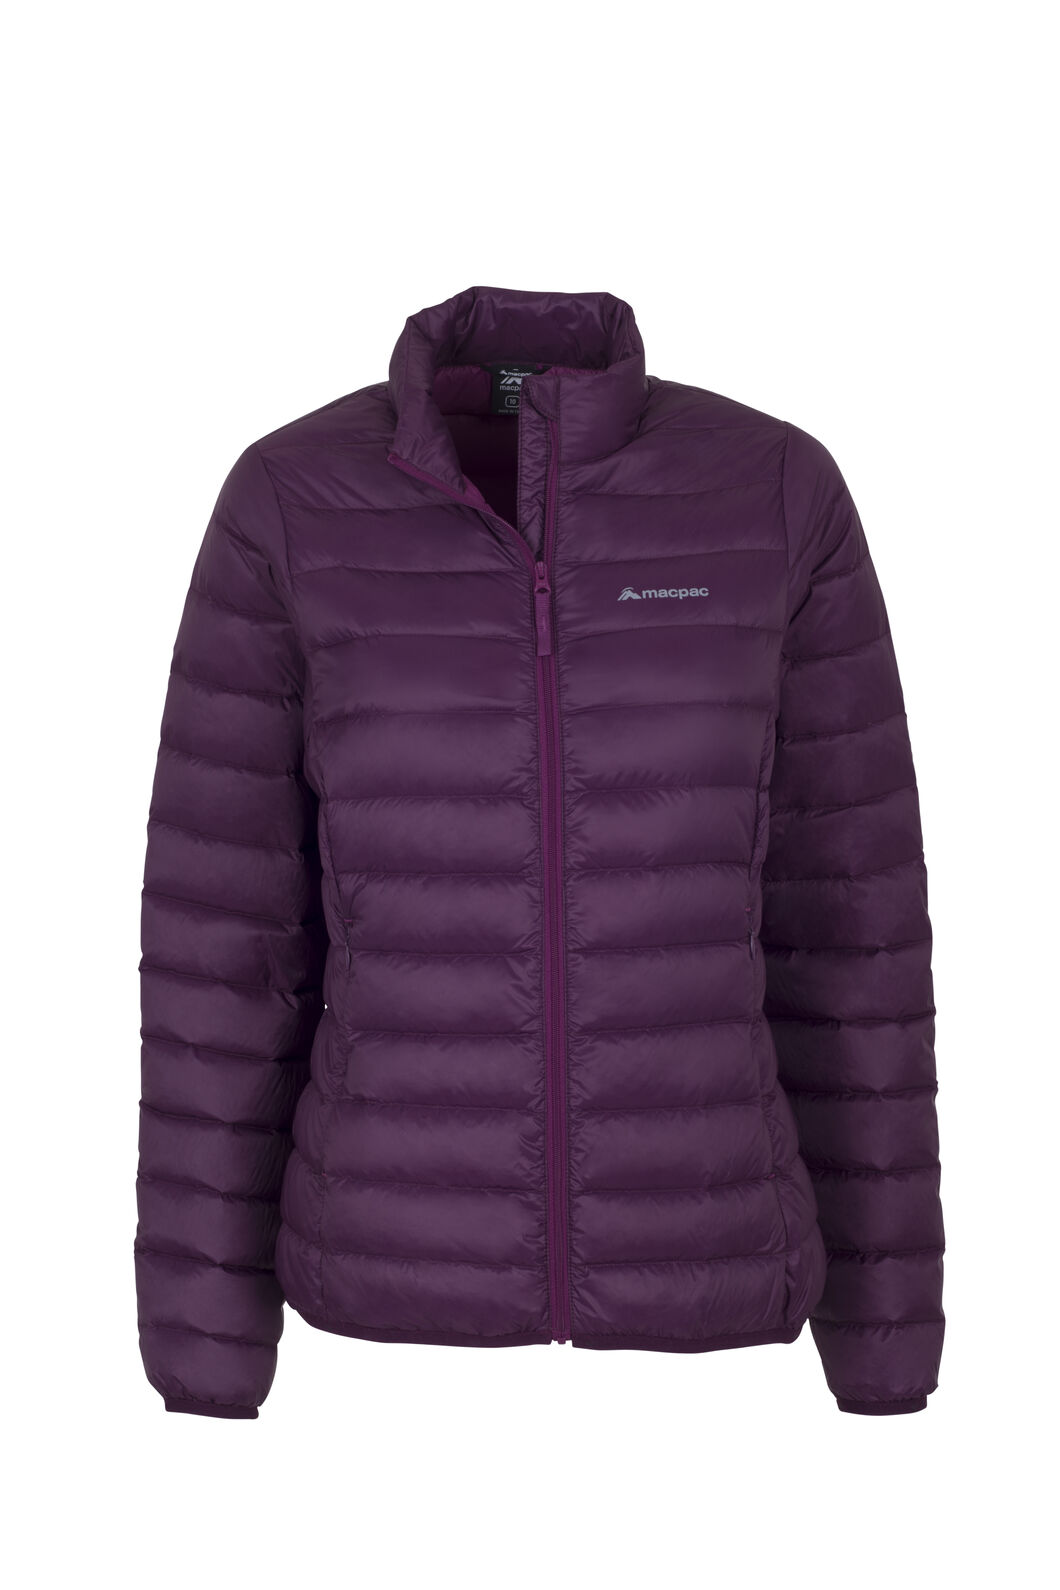 Macpac Uber Light Down Jacket - Women's, Potent Purple, hi-res